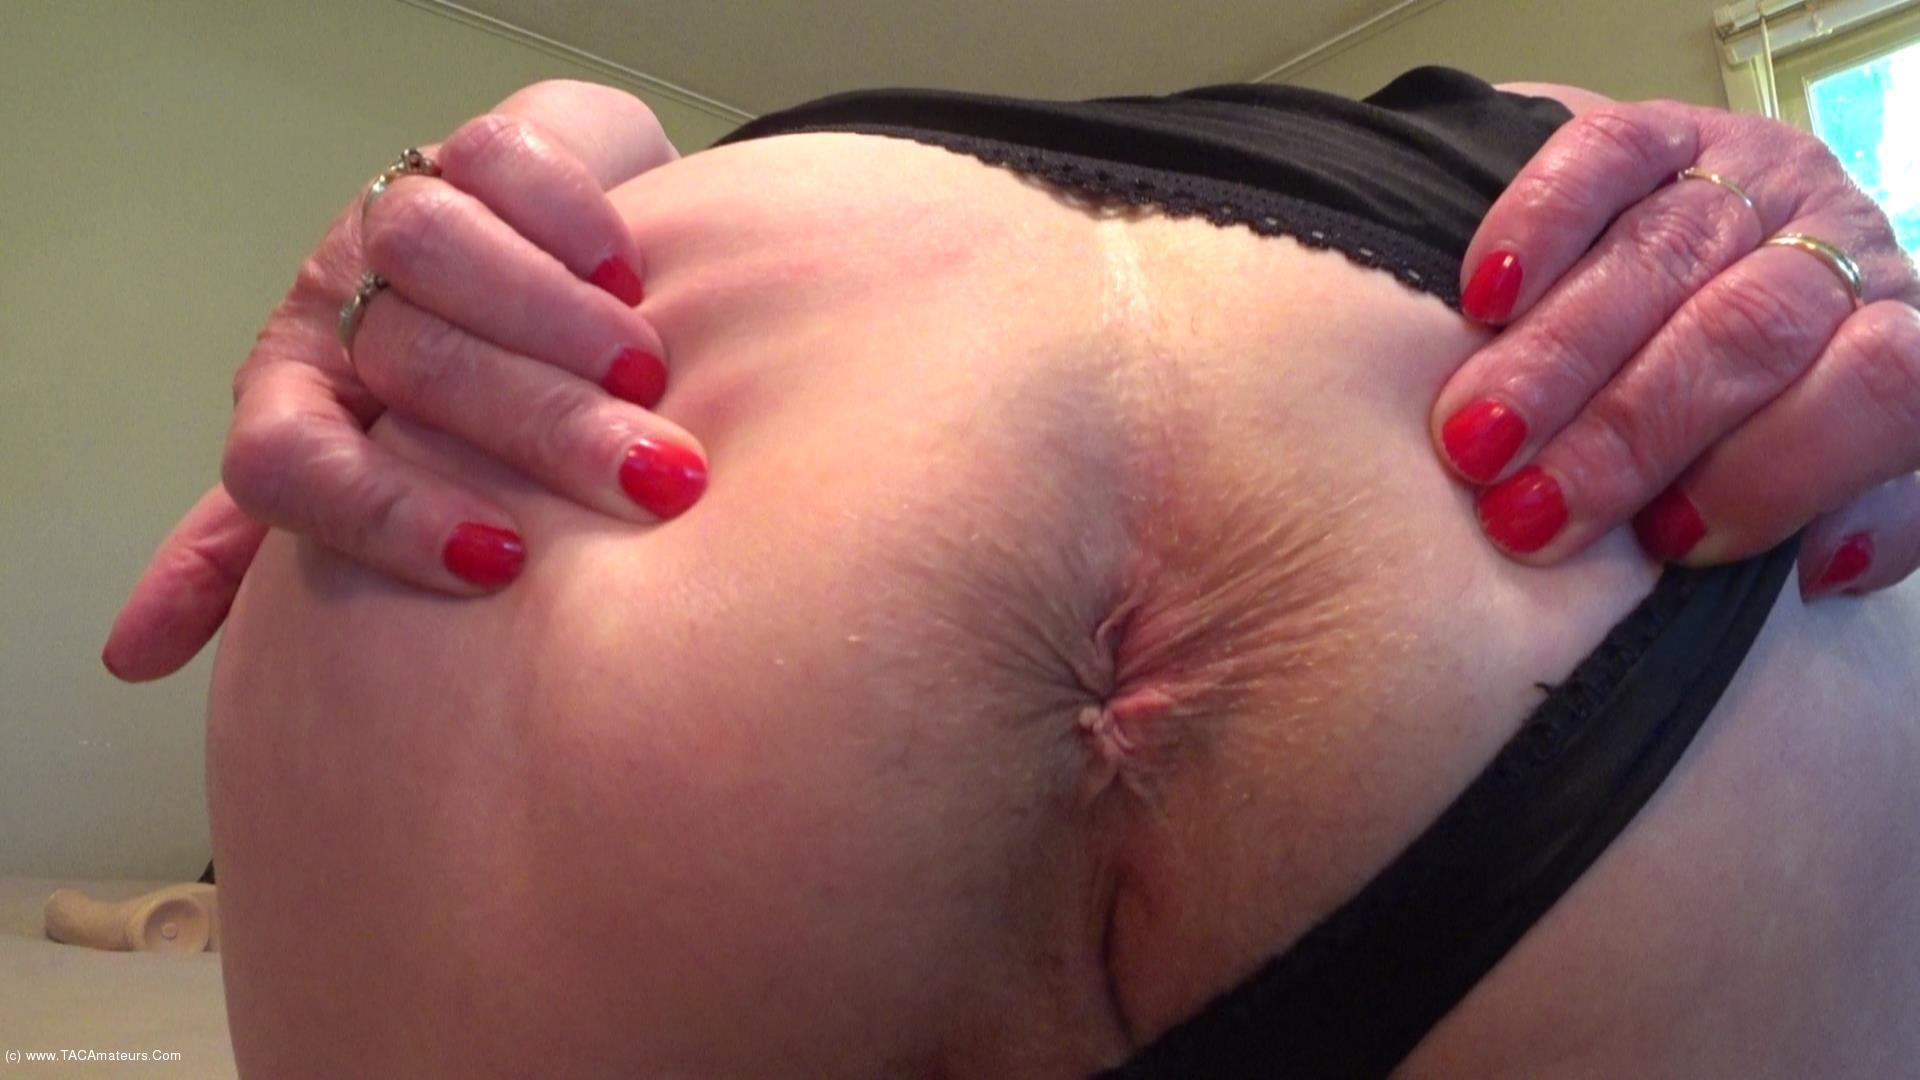 CougarBabeJolee - Arse Lovers Panty Worshipping Fun scene 2